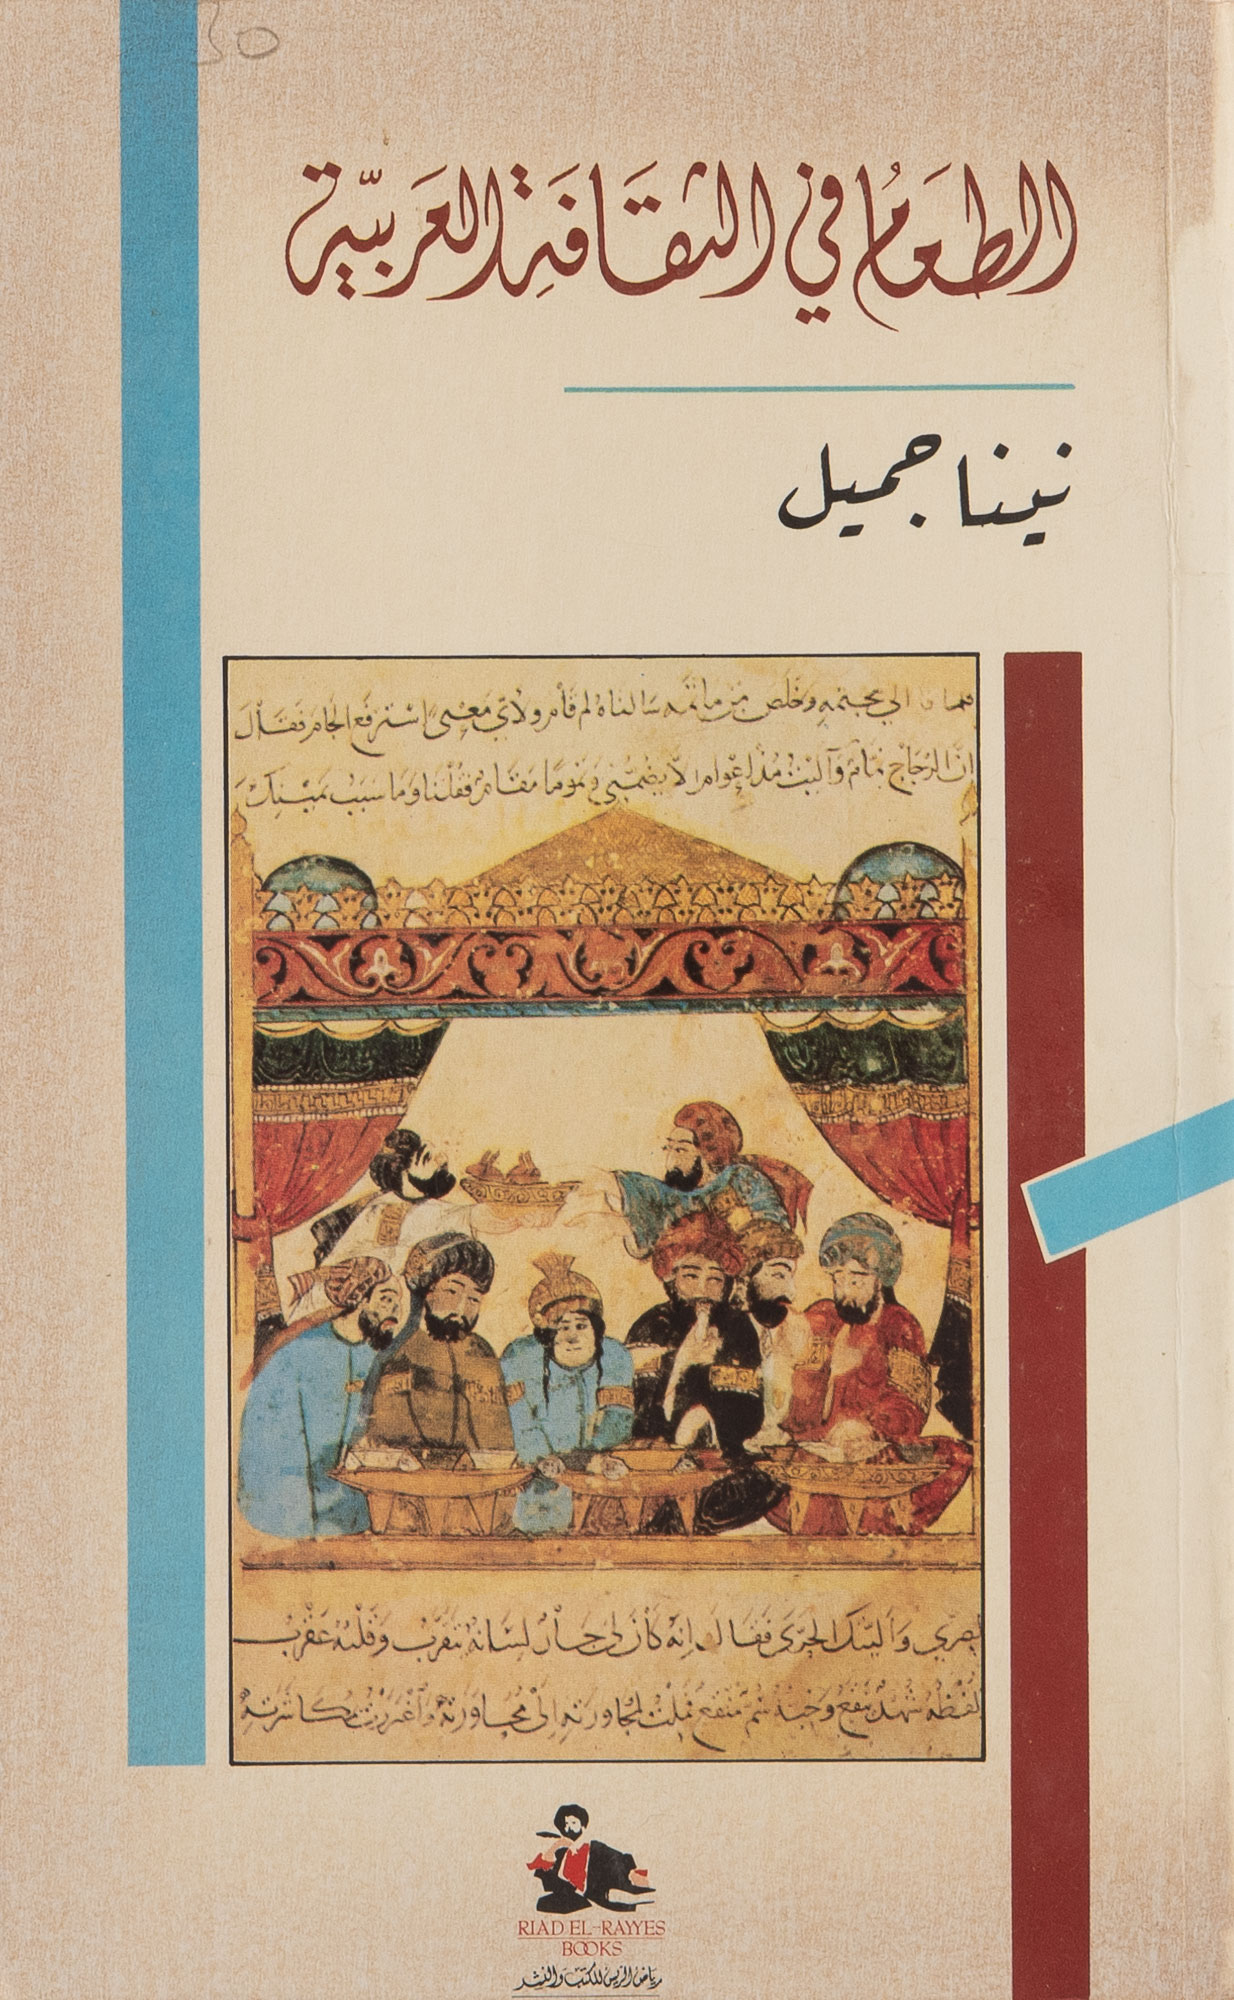 The cover of the book Food in Arab Culture